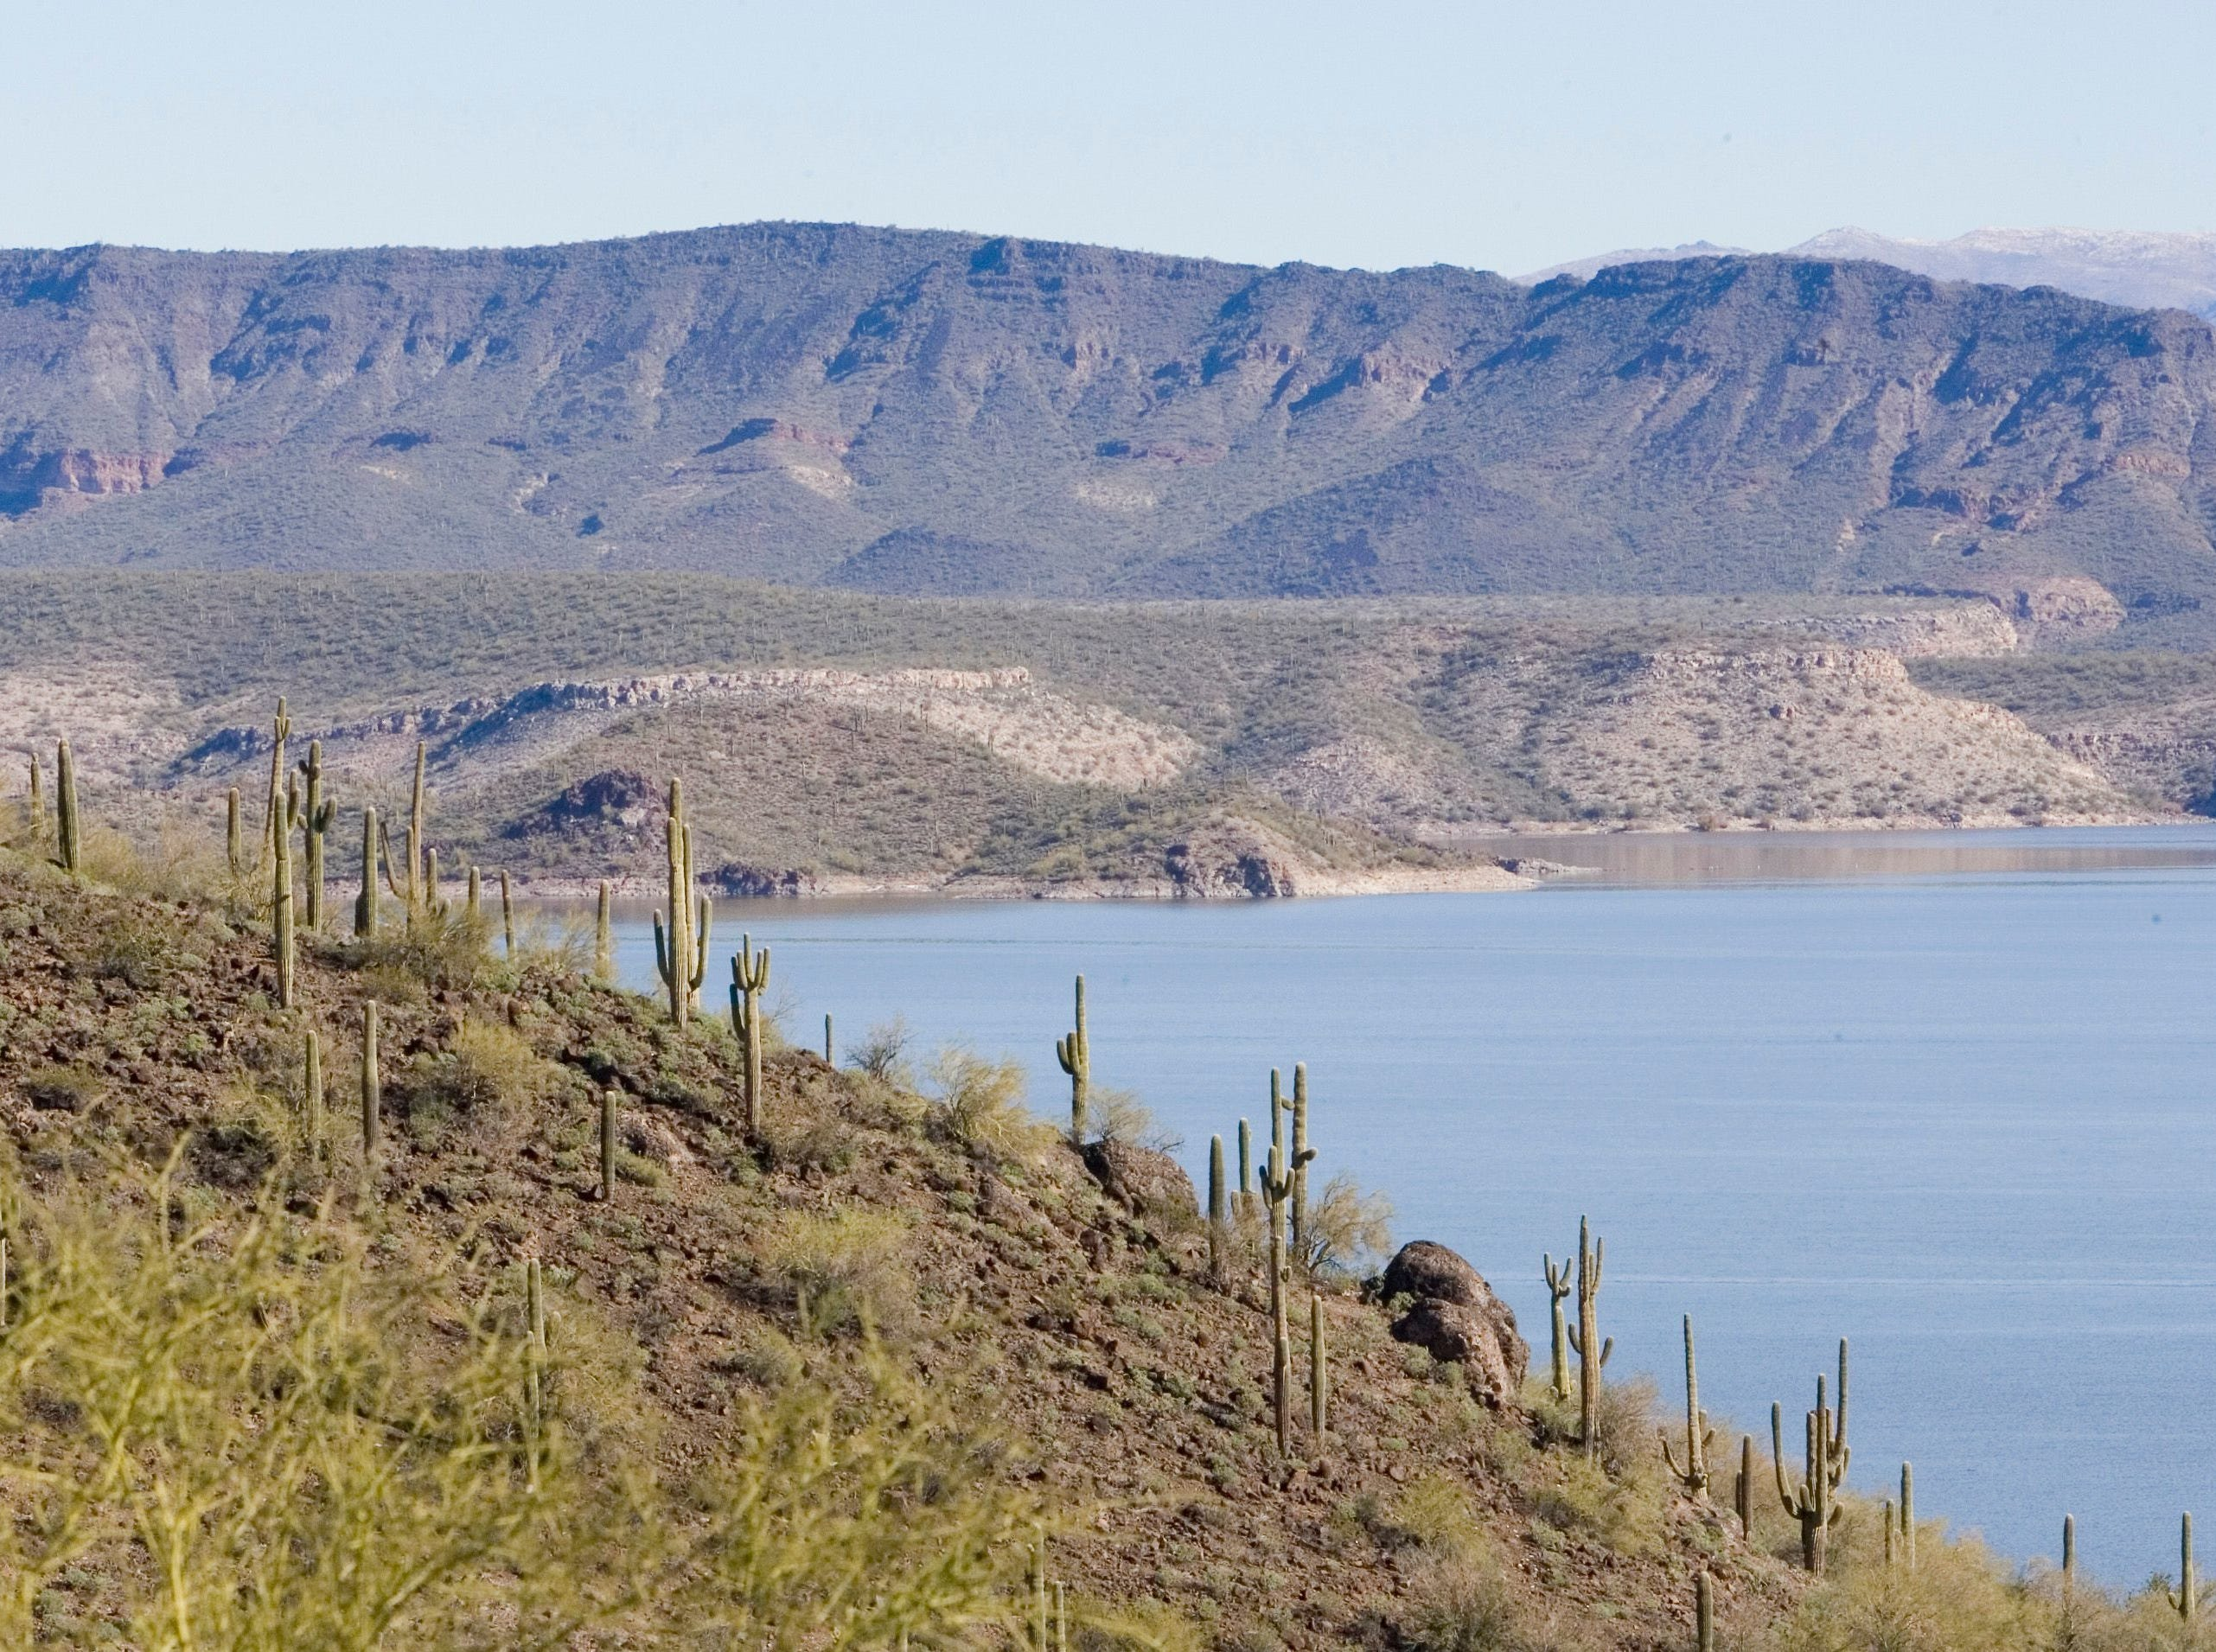 LEARN TO PREP FOR A HIKE: If you aren't quite ready to start hiking, head over to Lake Pleasant Regional Park for lessons in preparing for the desert, what to do if you get lost and other helpful information.